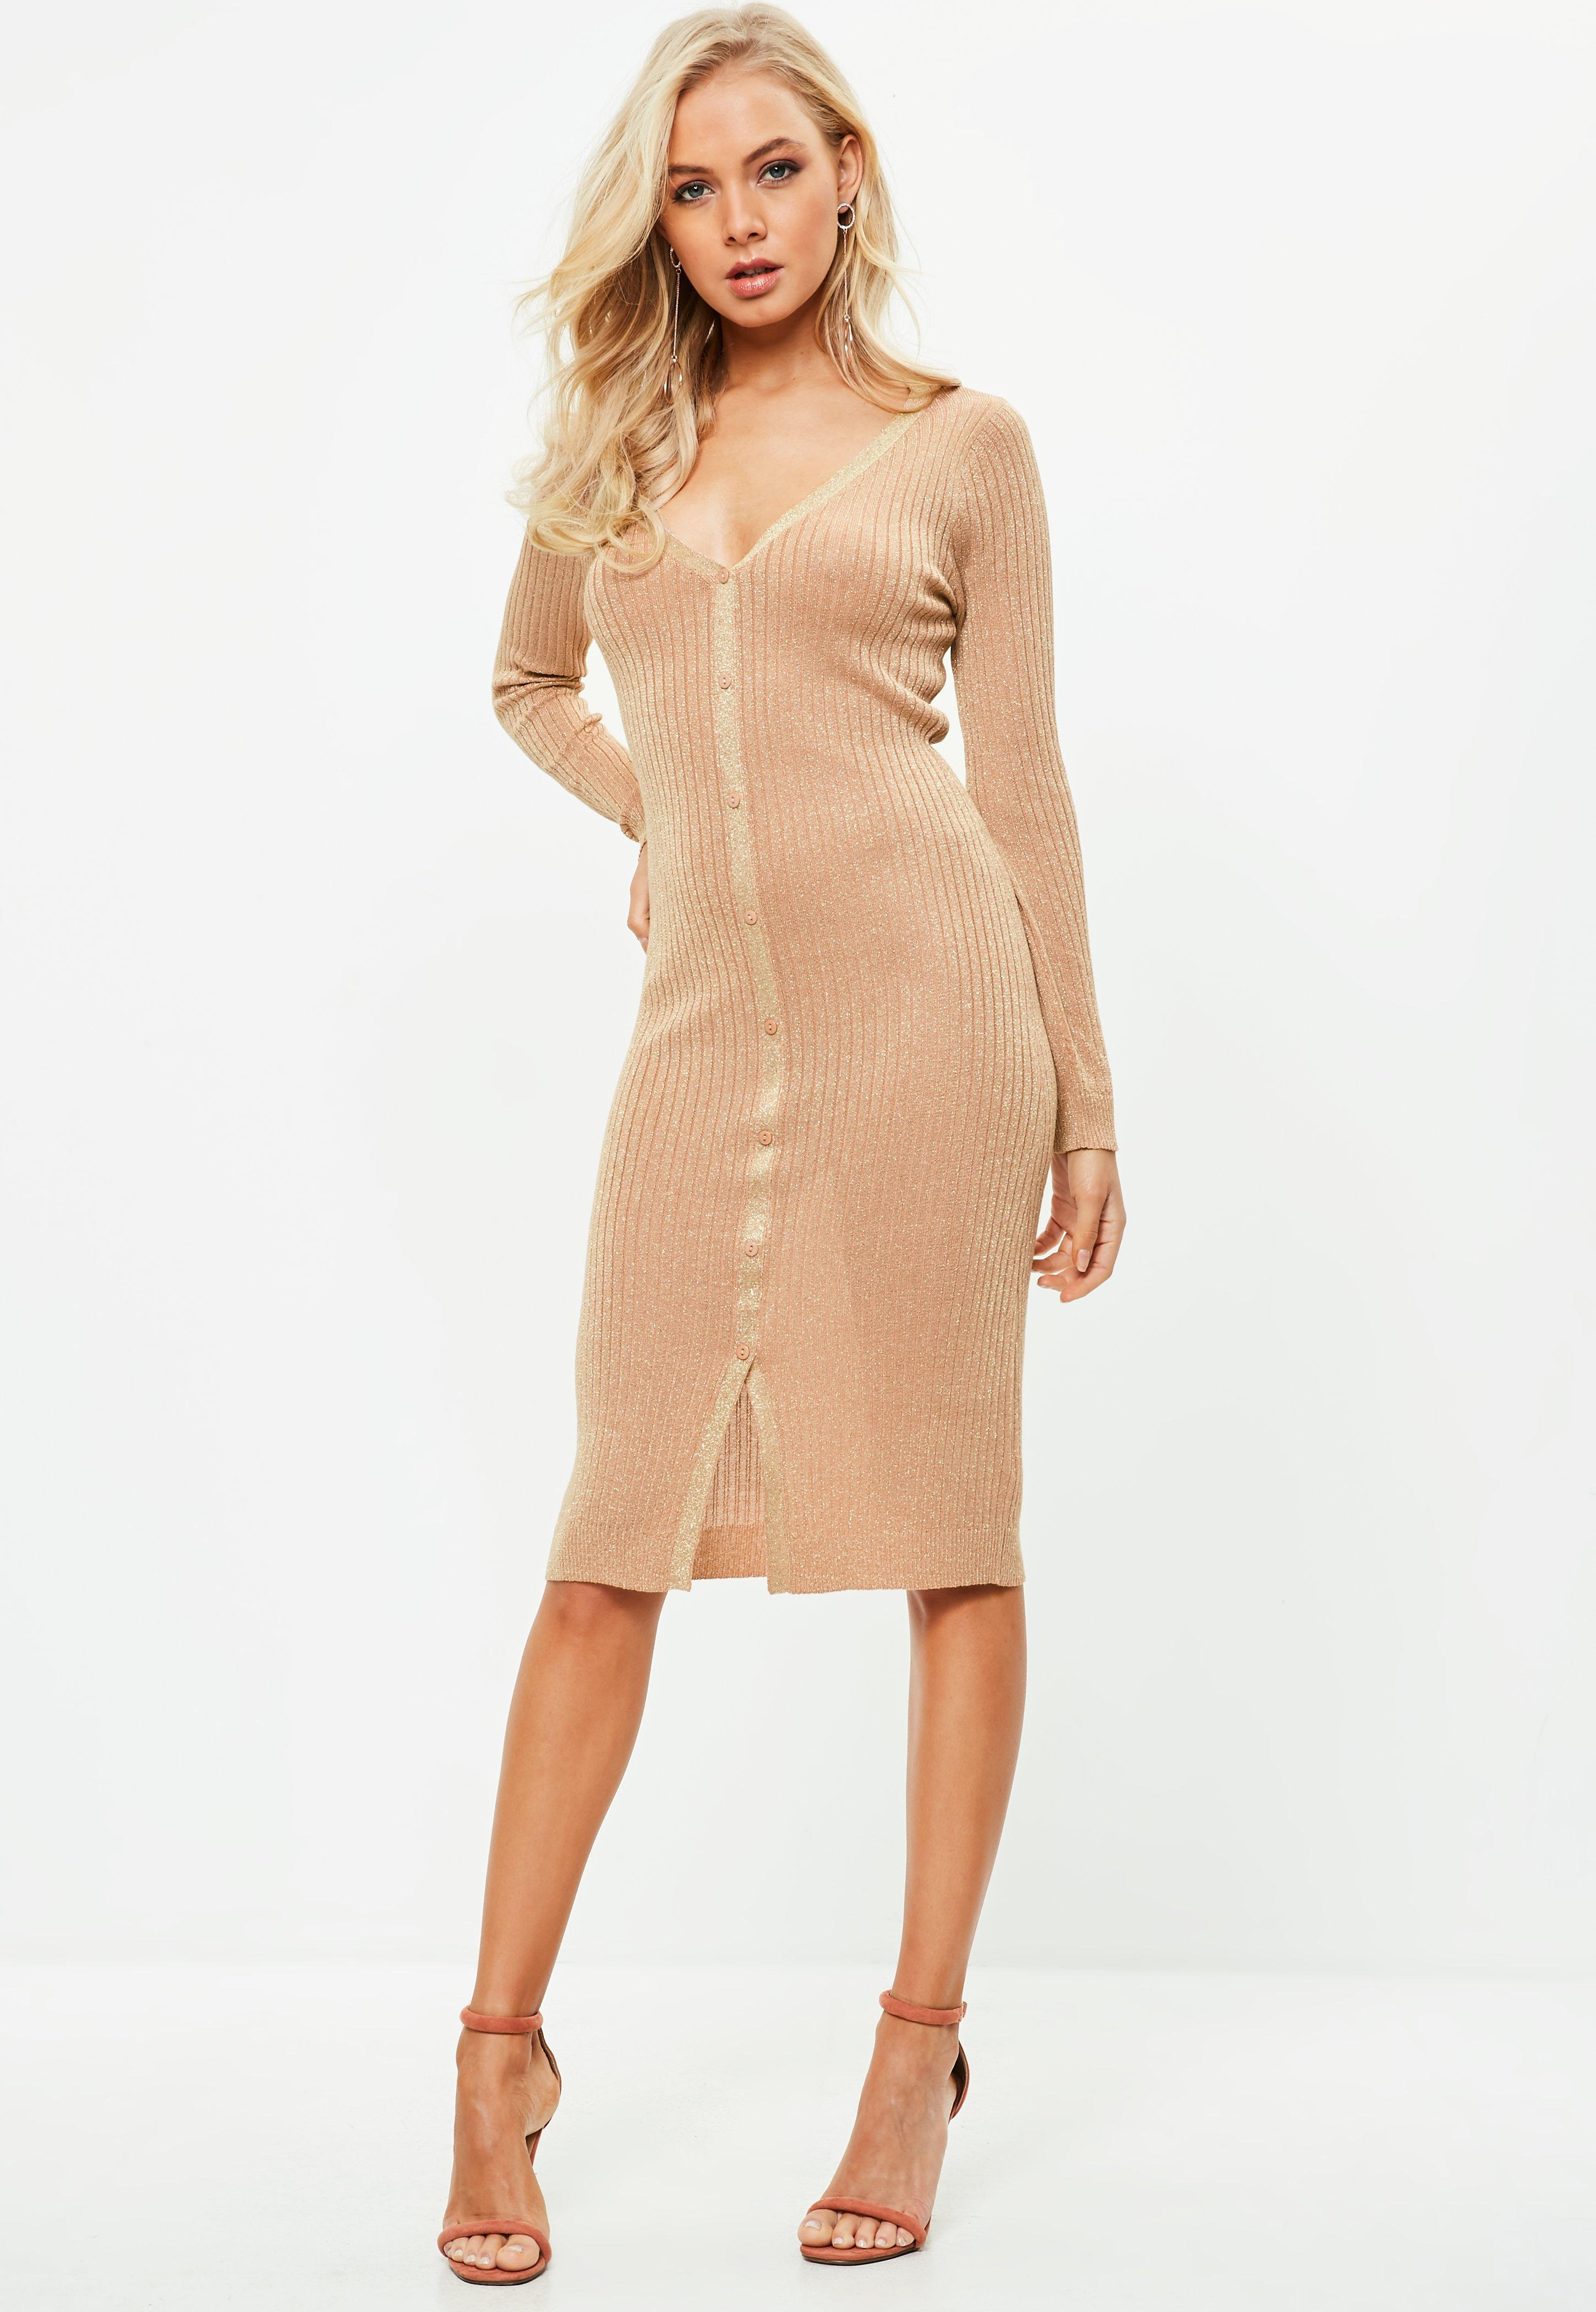 Lyst - Missguided Rose Gold Plunge Metallic Button Midi Dress in ... 6a7dd16e4